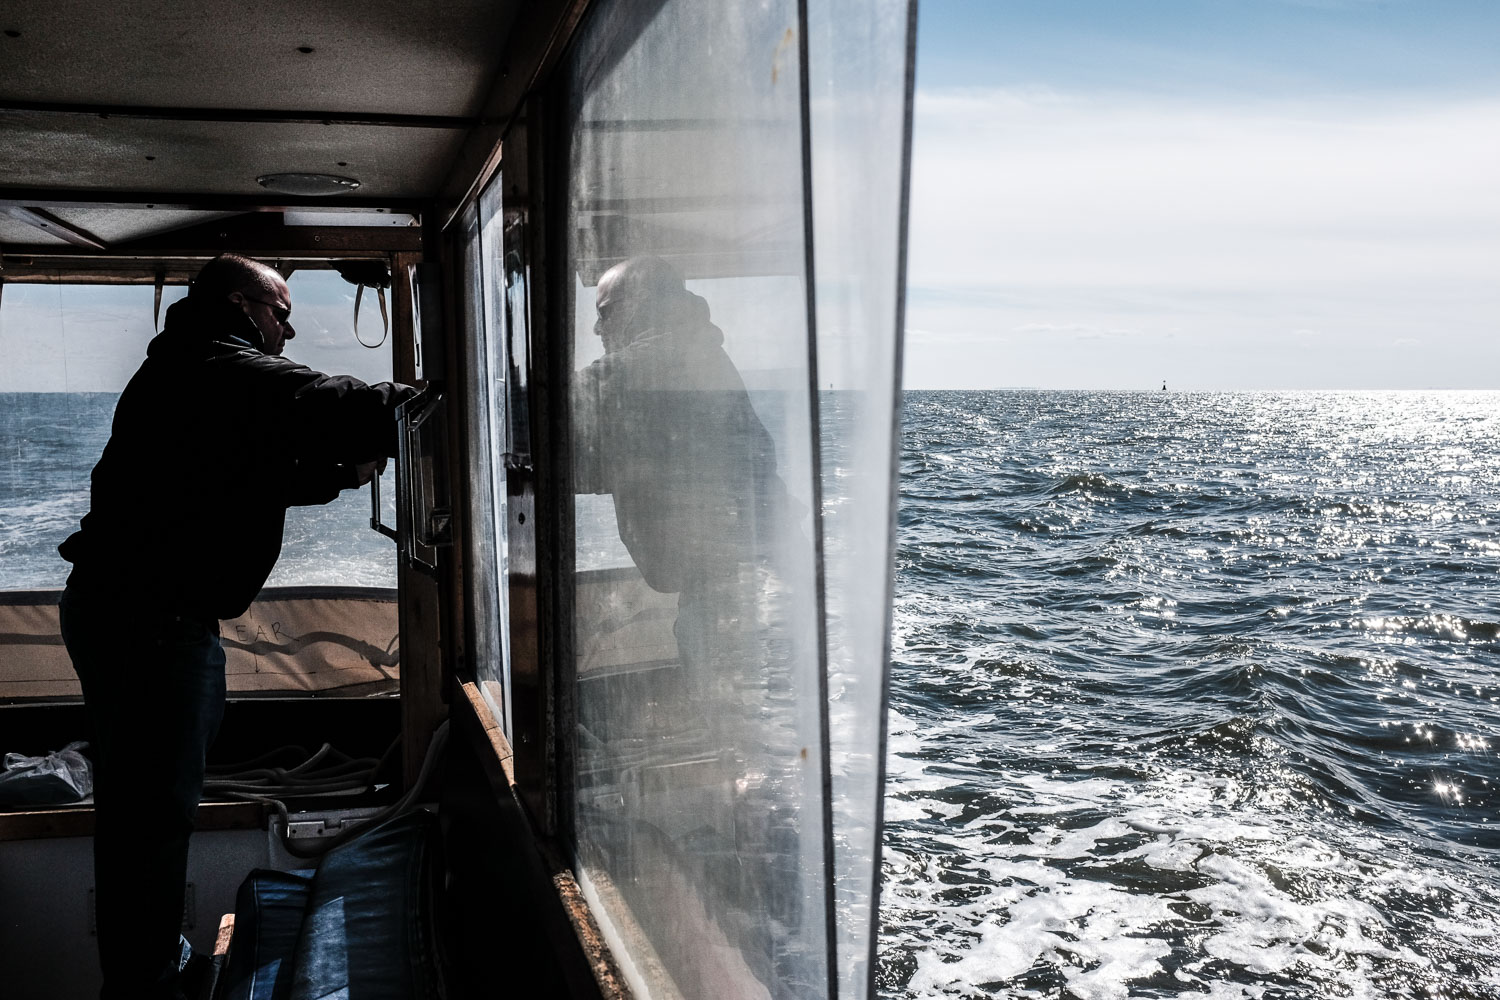 First mate Justin Infantino aboard the Sea Mist off the coast of Branford, Conn. Andrew Sullivan for The New York Times